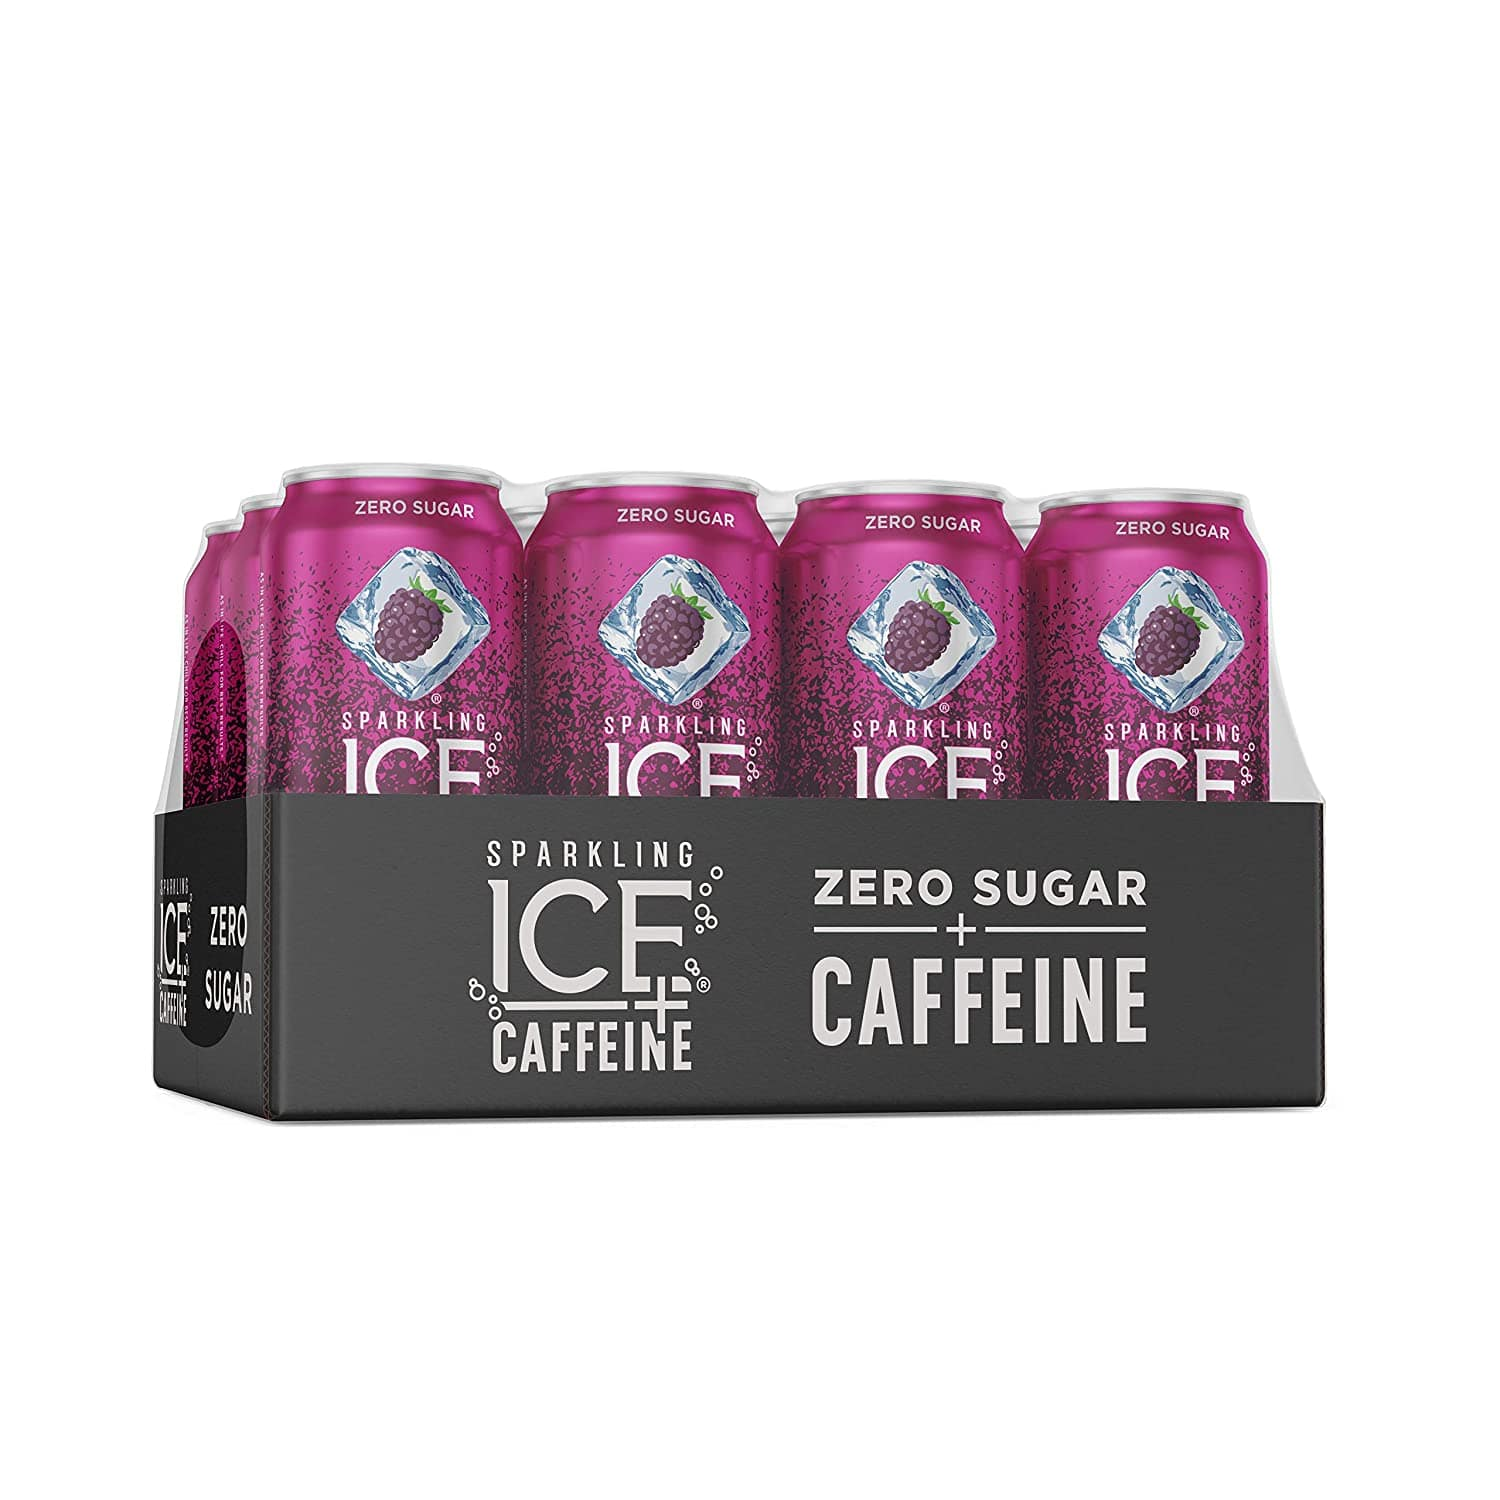 Sparkling Ice Caffeine Black Raspberry 16oz, 12-pack as low as $9.43 with S&S at Amazon.